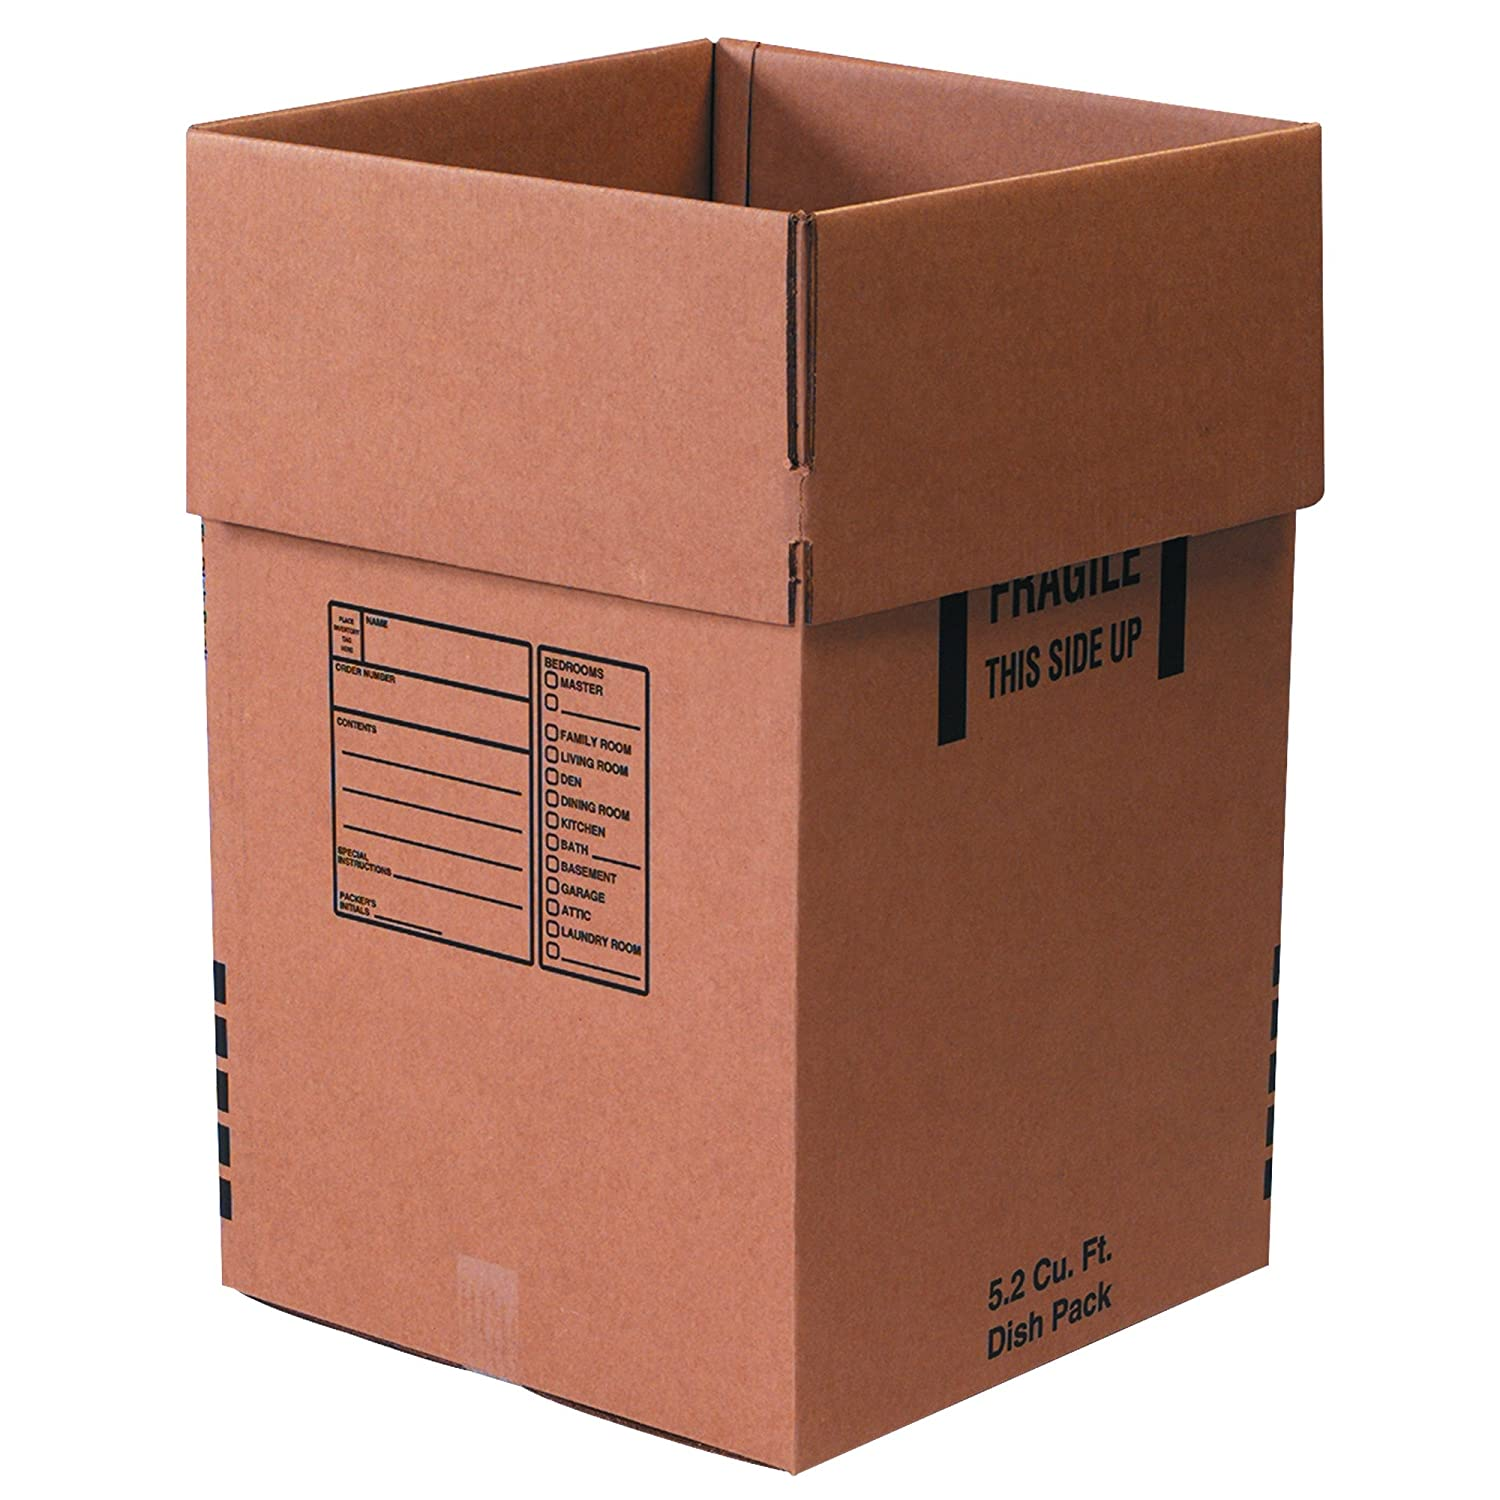 Moving Boxes 18 x 18 x 18 Double Wall Cardboard Box Shipping Packing Storage